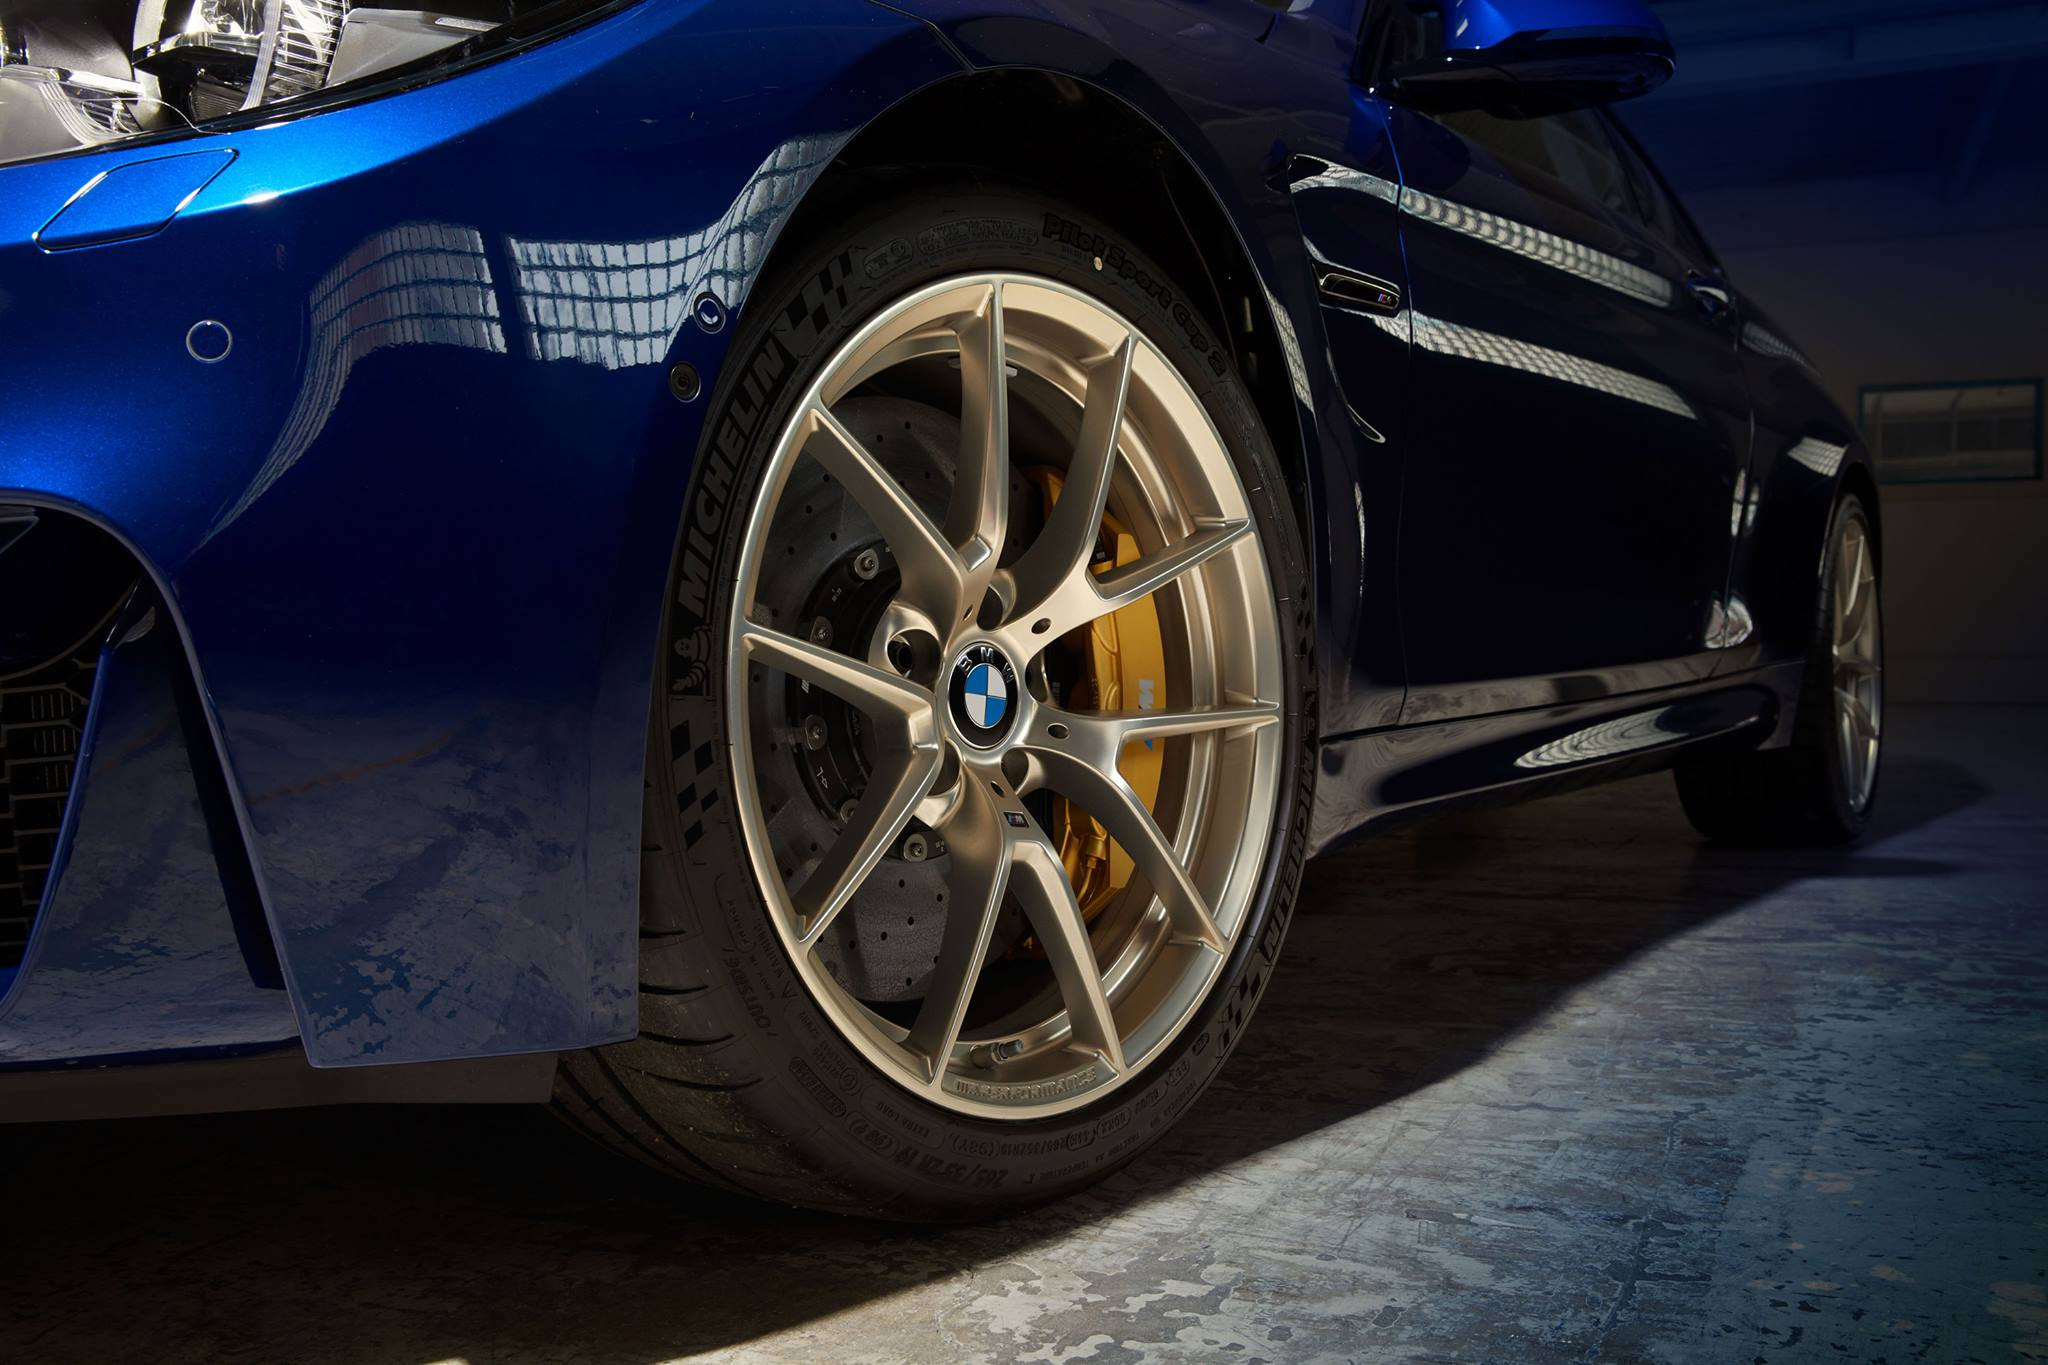 bmw now offering style 763m wheels in gold for m2 m3 and m4. Black Bedroom Furniture Sets. Home Design Ideas